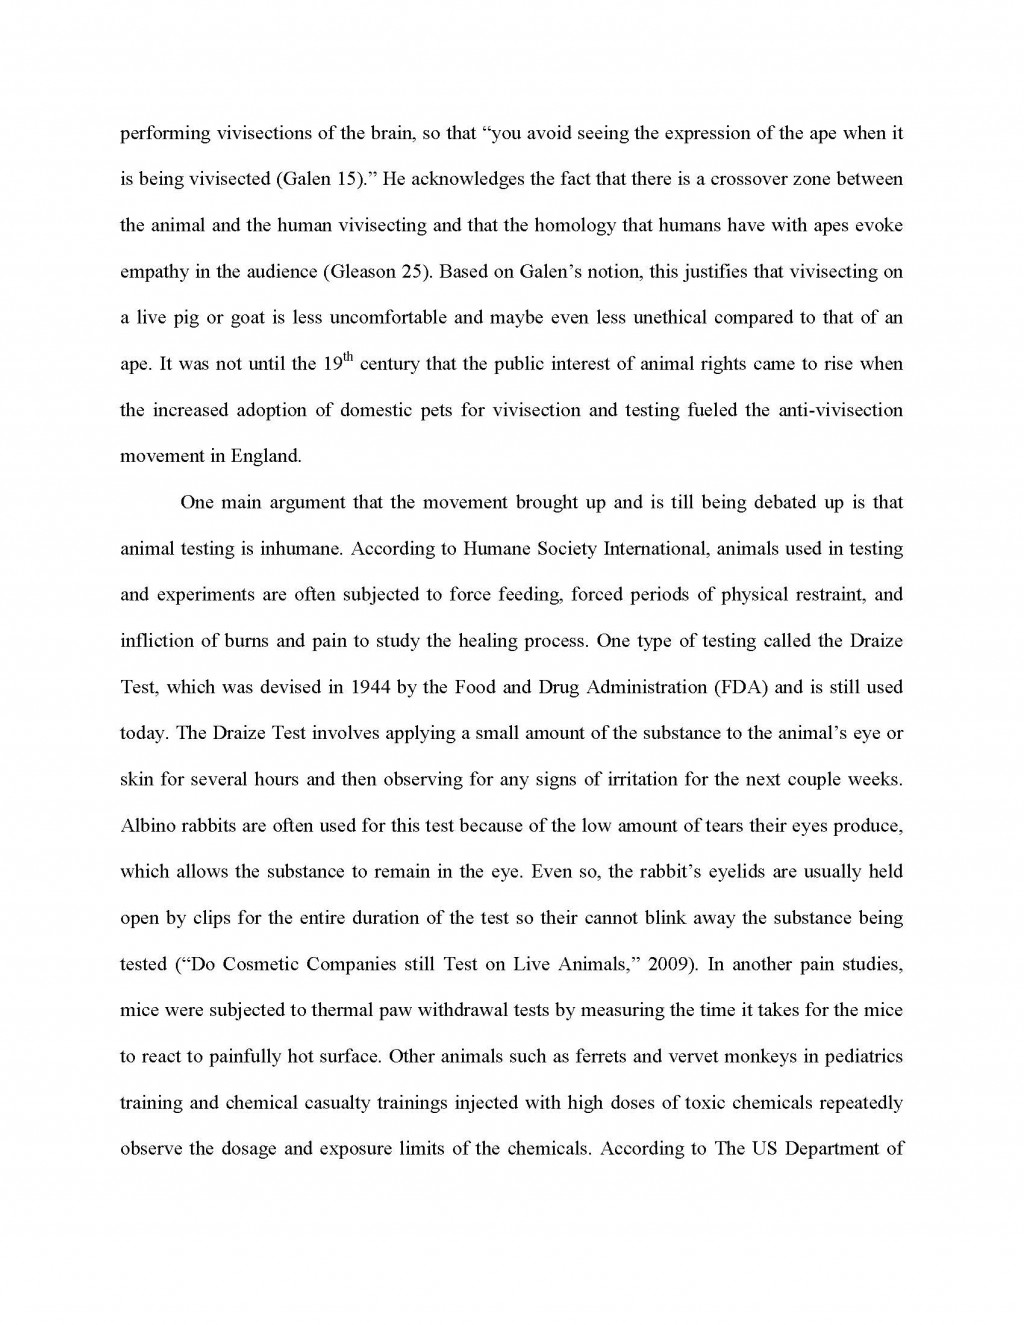 007 Essay Example Against Animal Testing Final Page 2 Imposing Titles Persuasive Conclusion Large